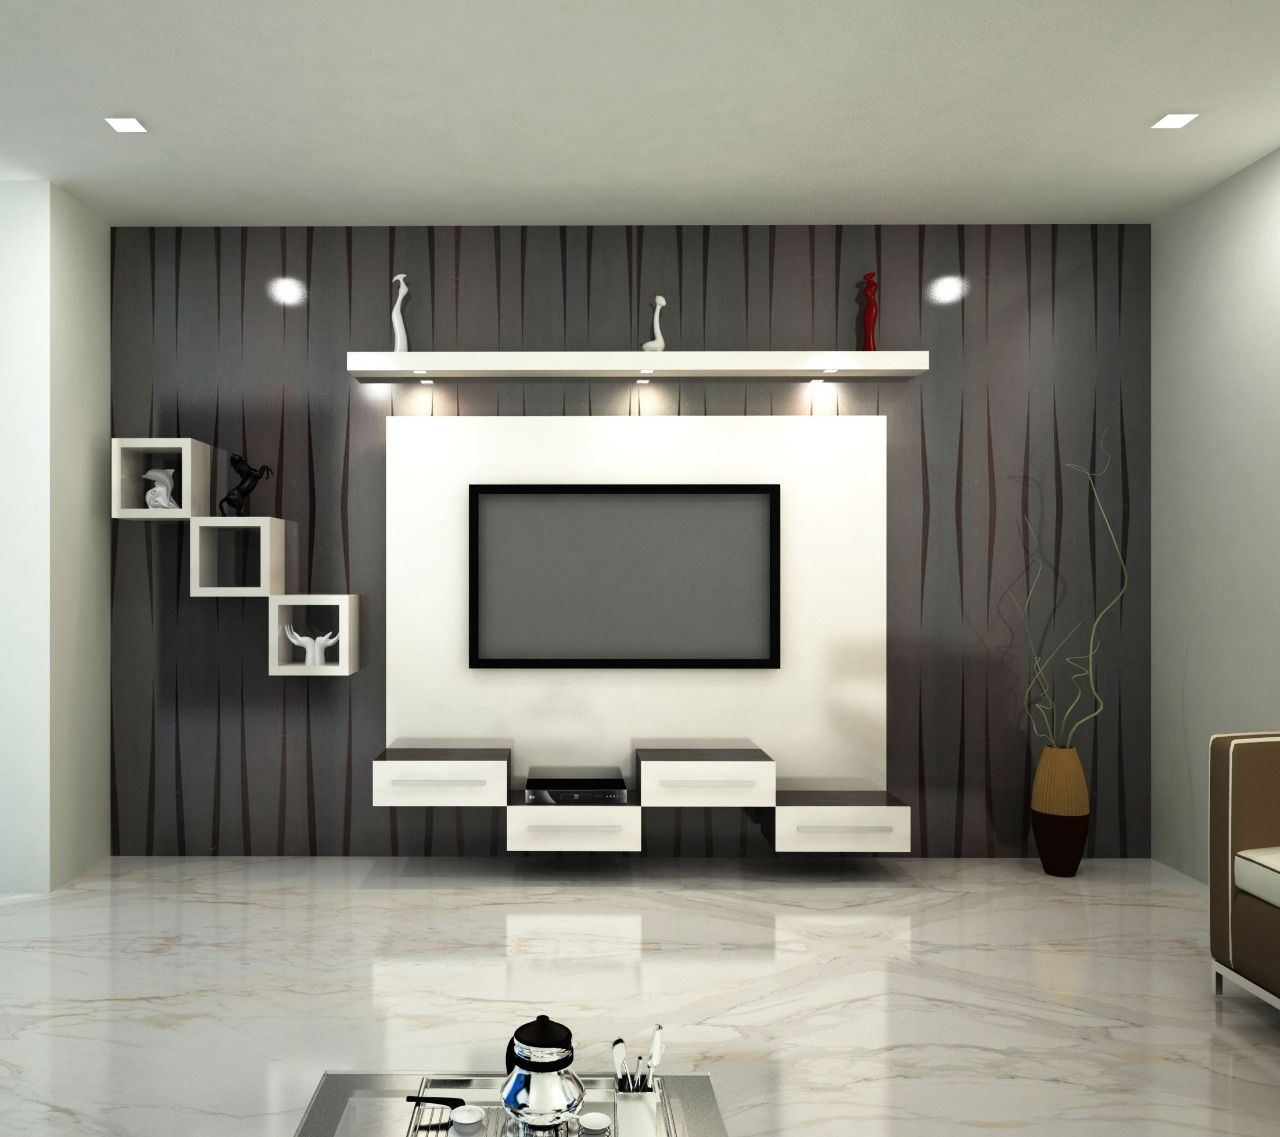 captivating living room tv wall design | Pin by SRINIVASAM INTERIORS on Tv units in 2020 | Modern ...